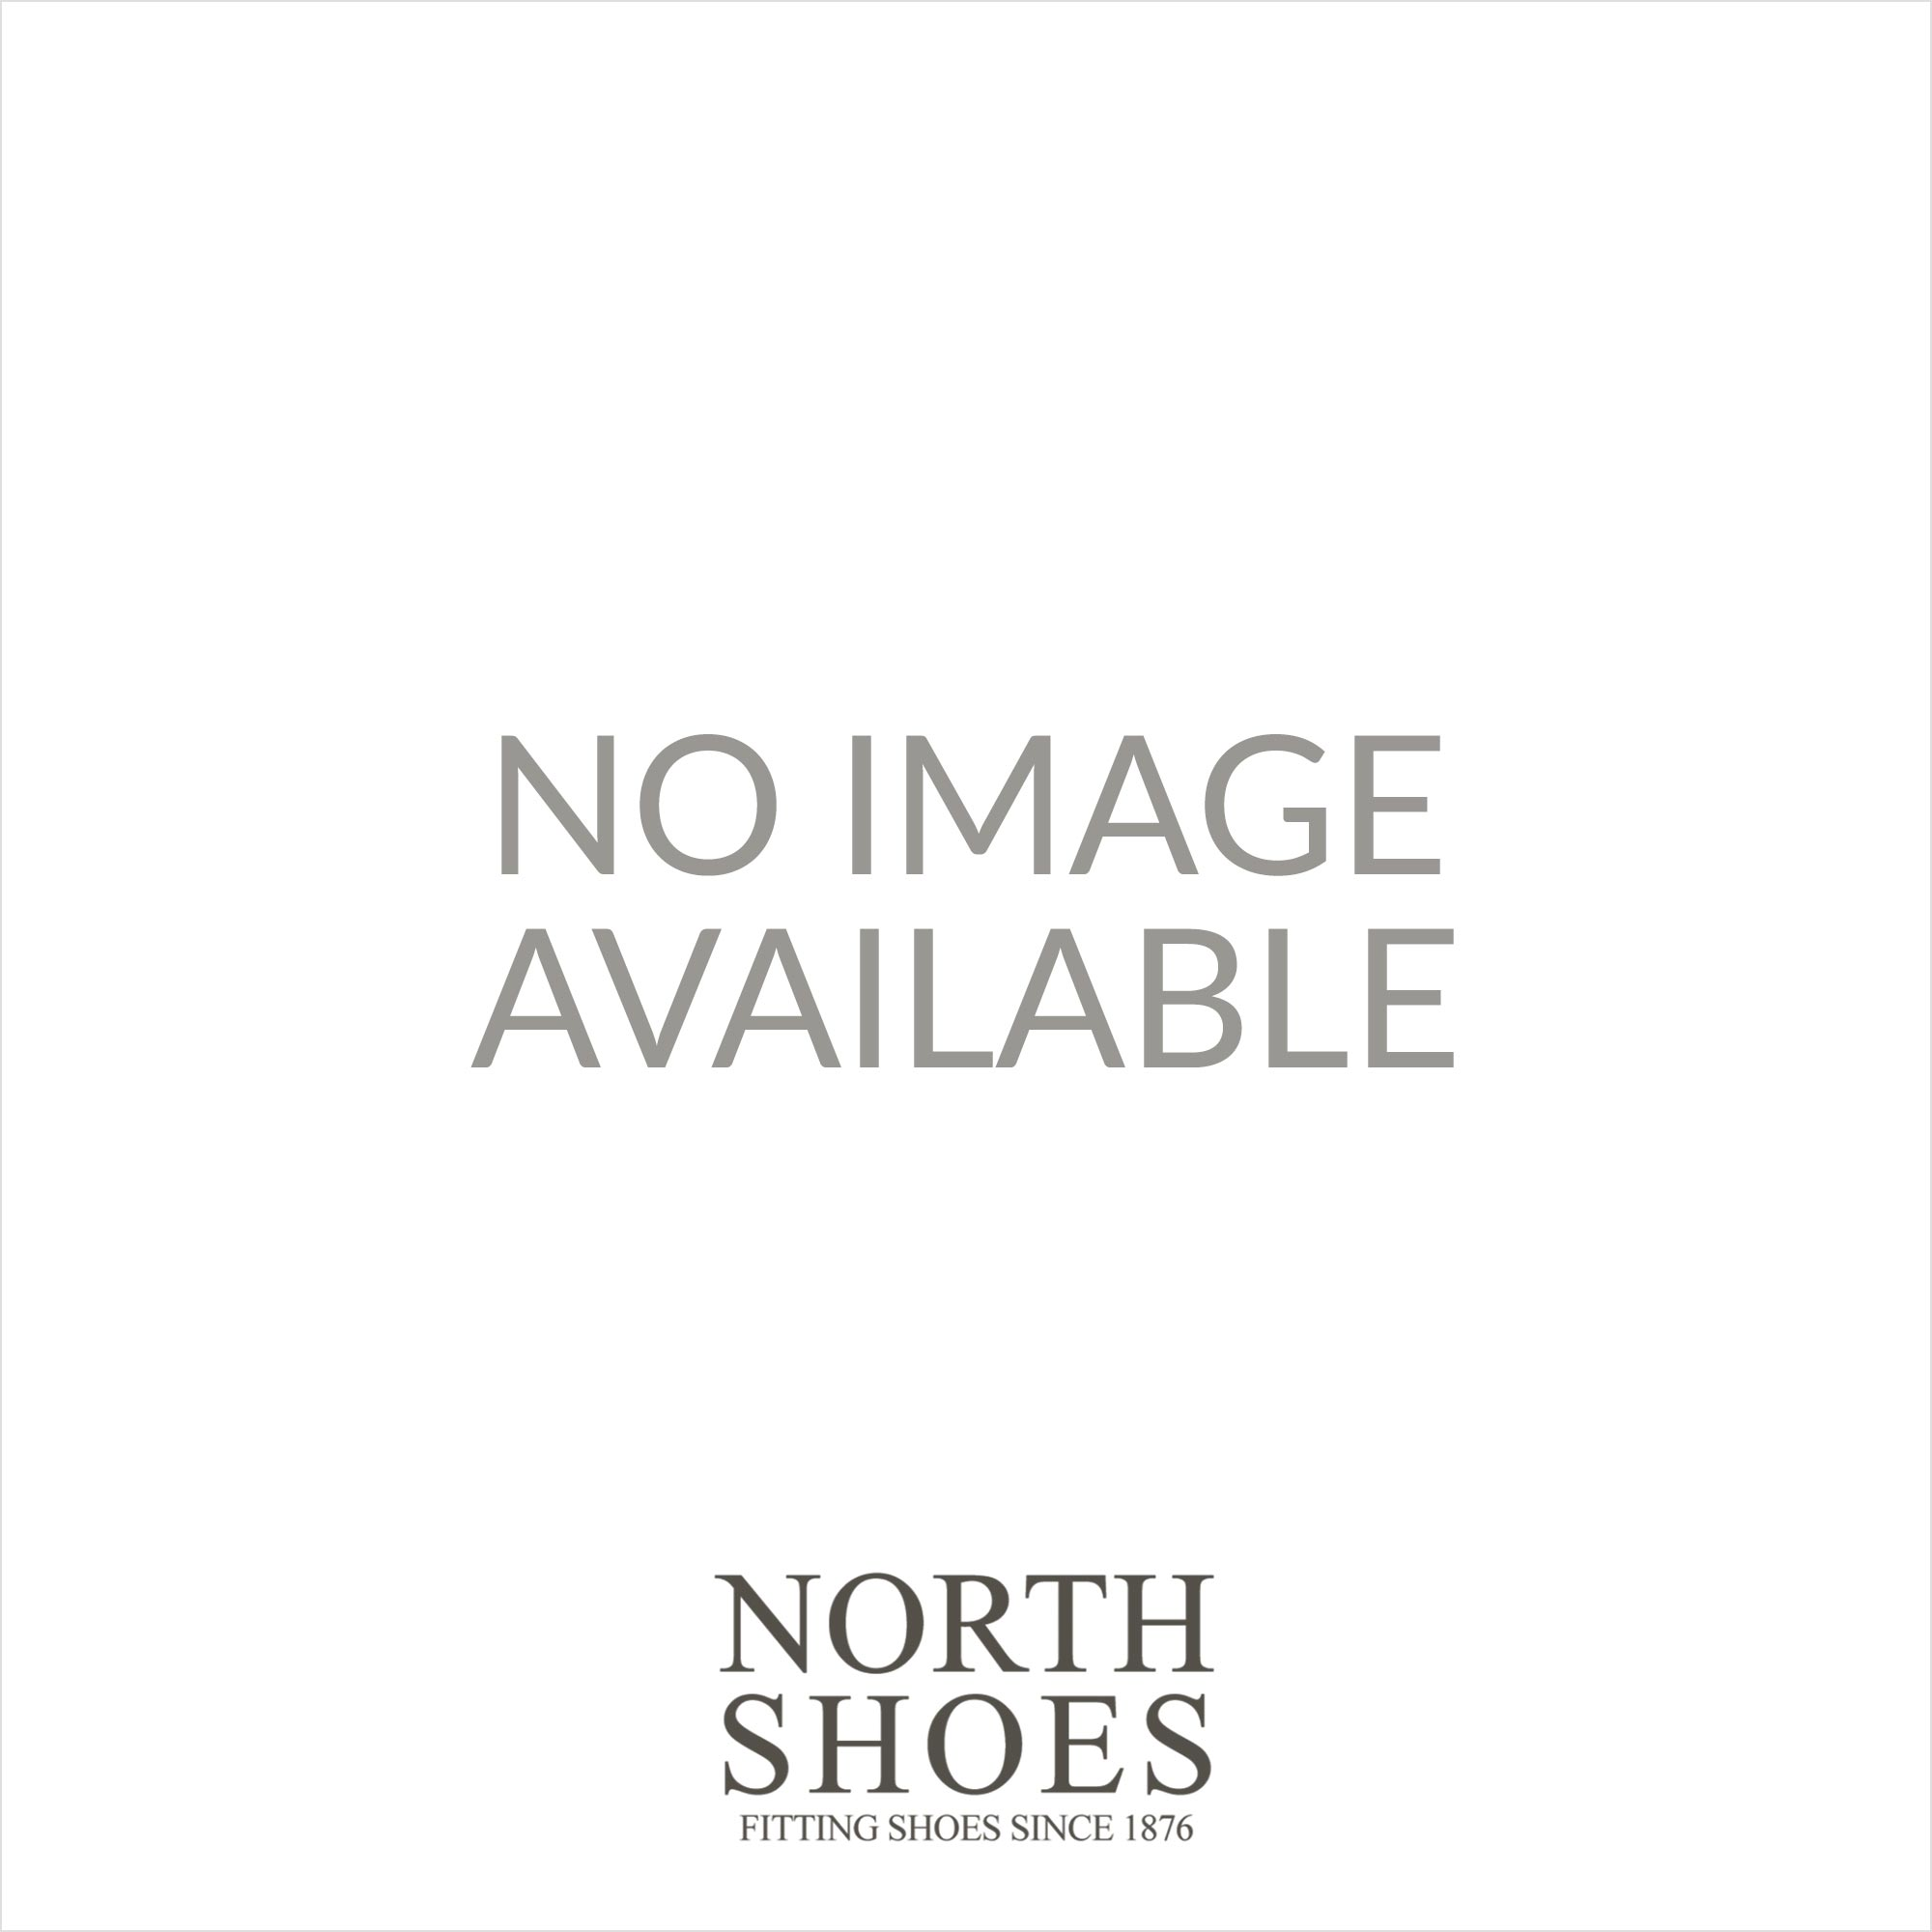 46d26fc2a13b Converse Chuck Taylor All Stars Classic M7650 White Canvas Unisex Lace Up Hi  Top Sneaker Boot - Converse from North Shoes UK